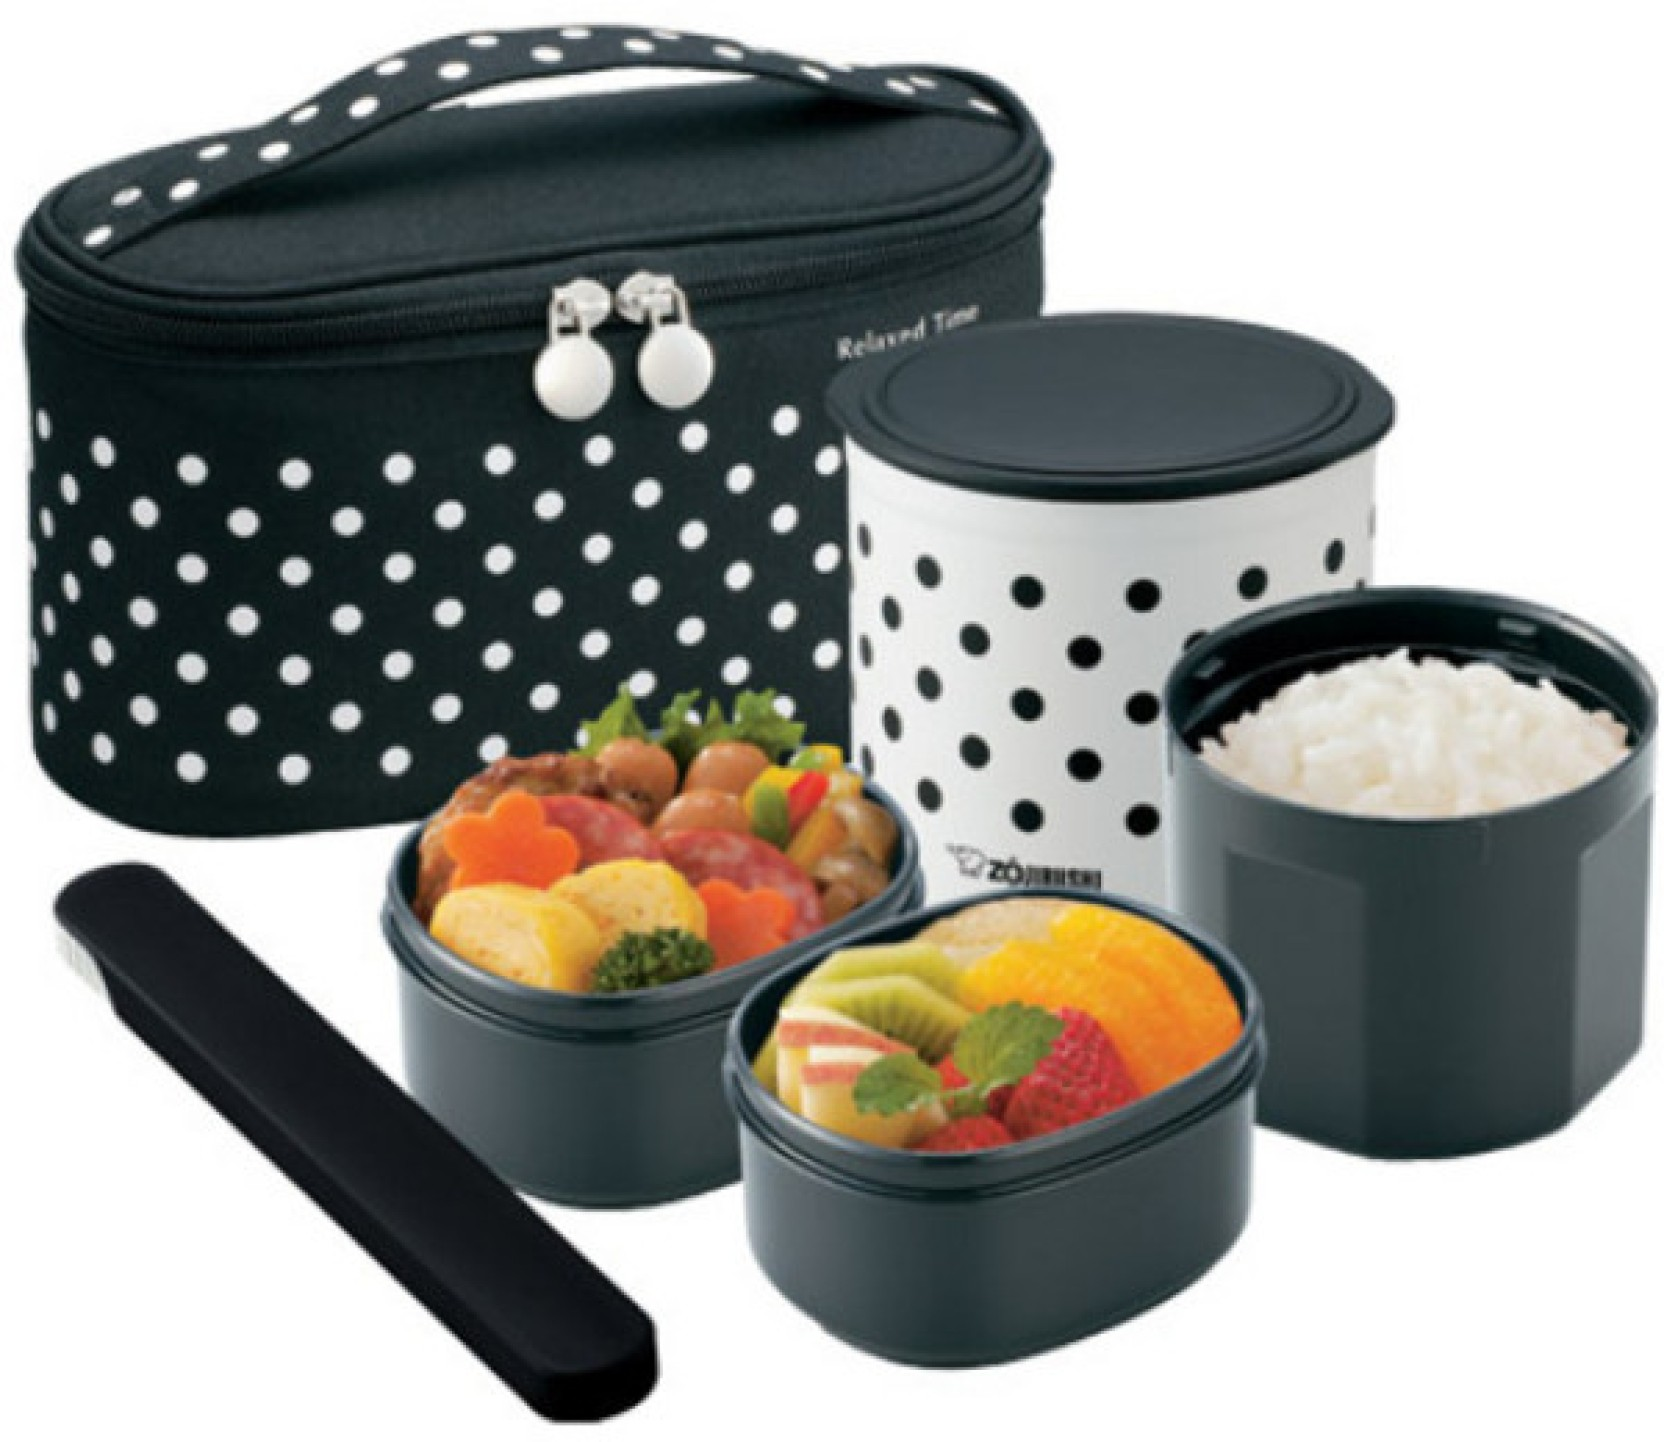 zojirushi szgc 02 3 containers lunch box lunch boxes. Black Bedroom Furniture Sets. Home Design Ideas